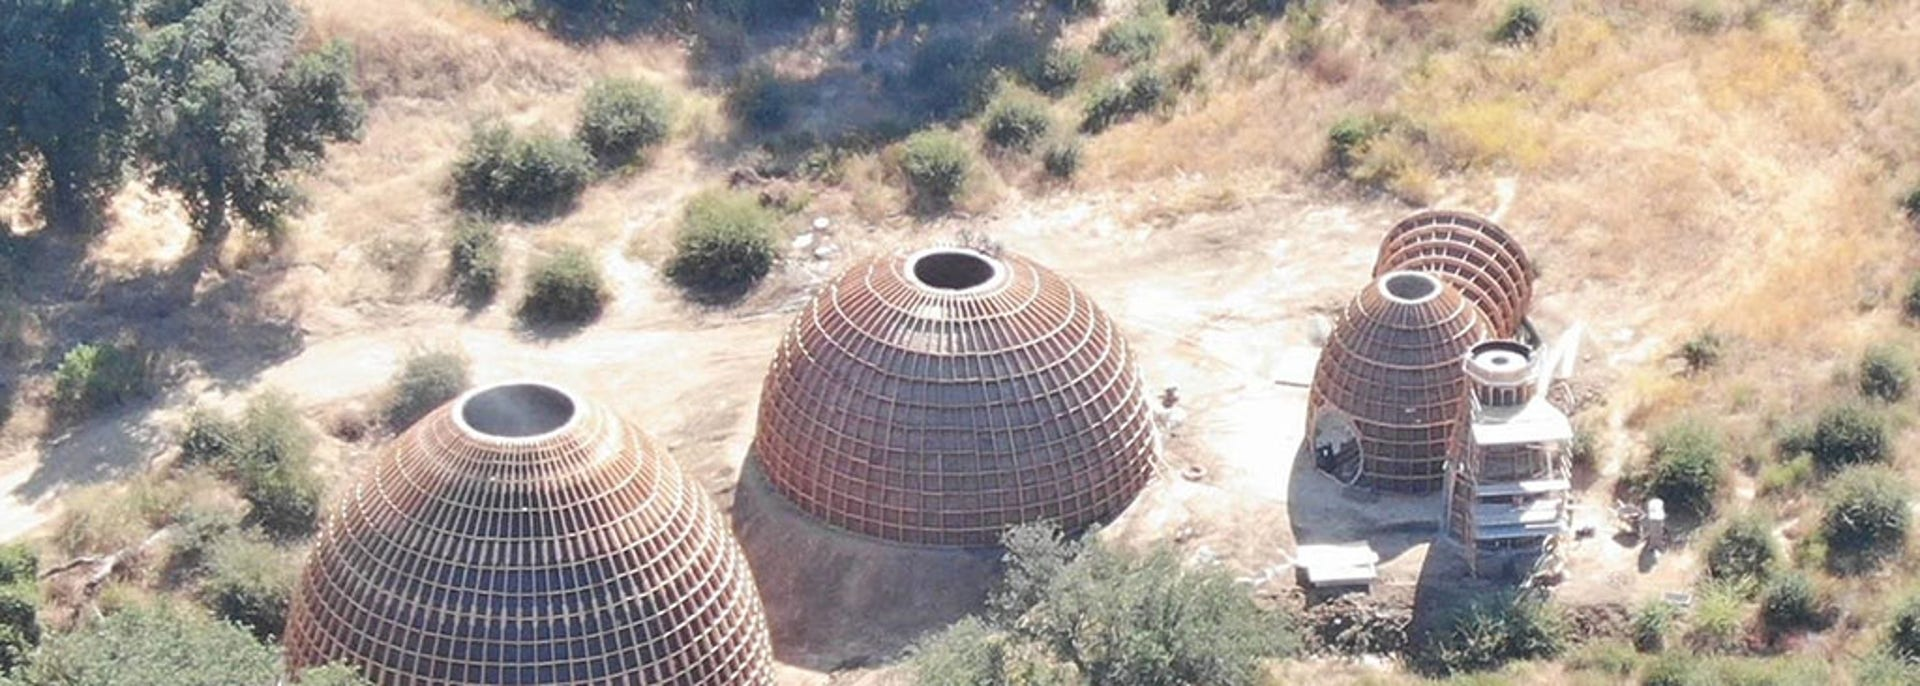 Kanye West's massive domed huts aimed to help Los Angeles housing hit snag: reports